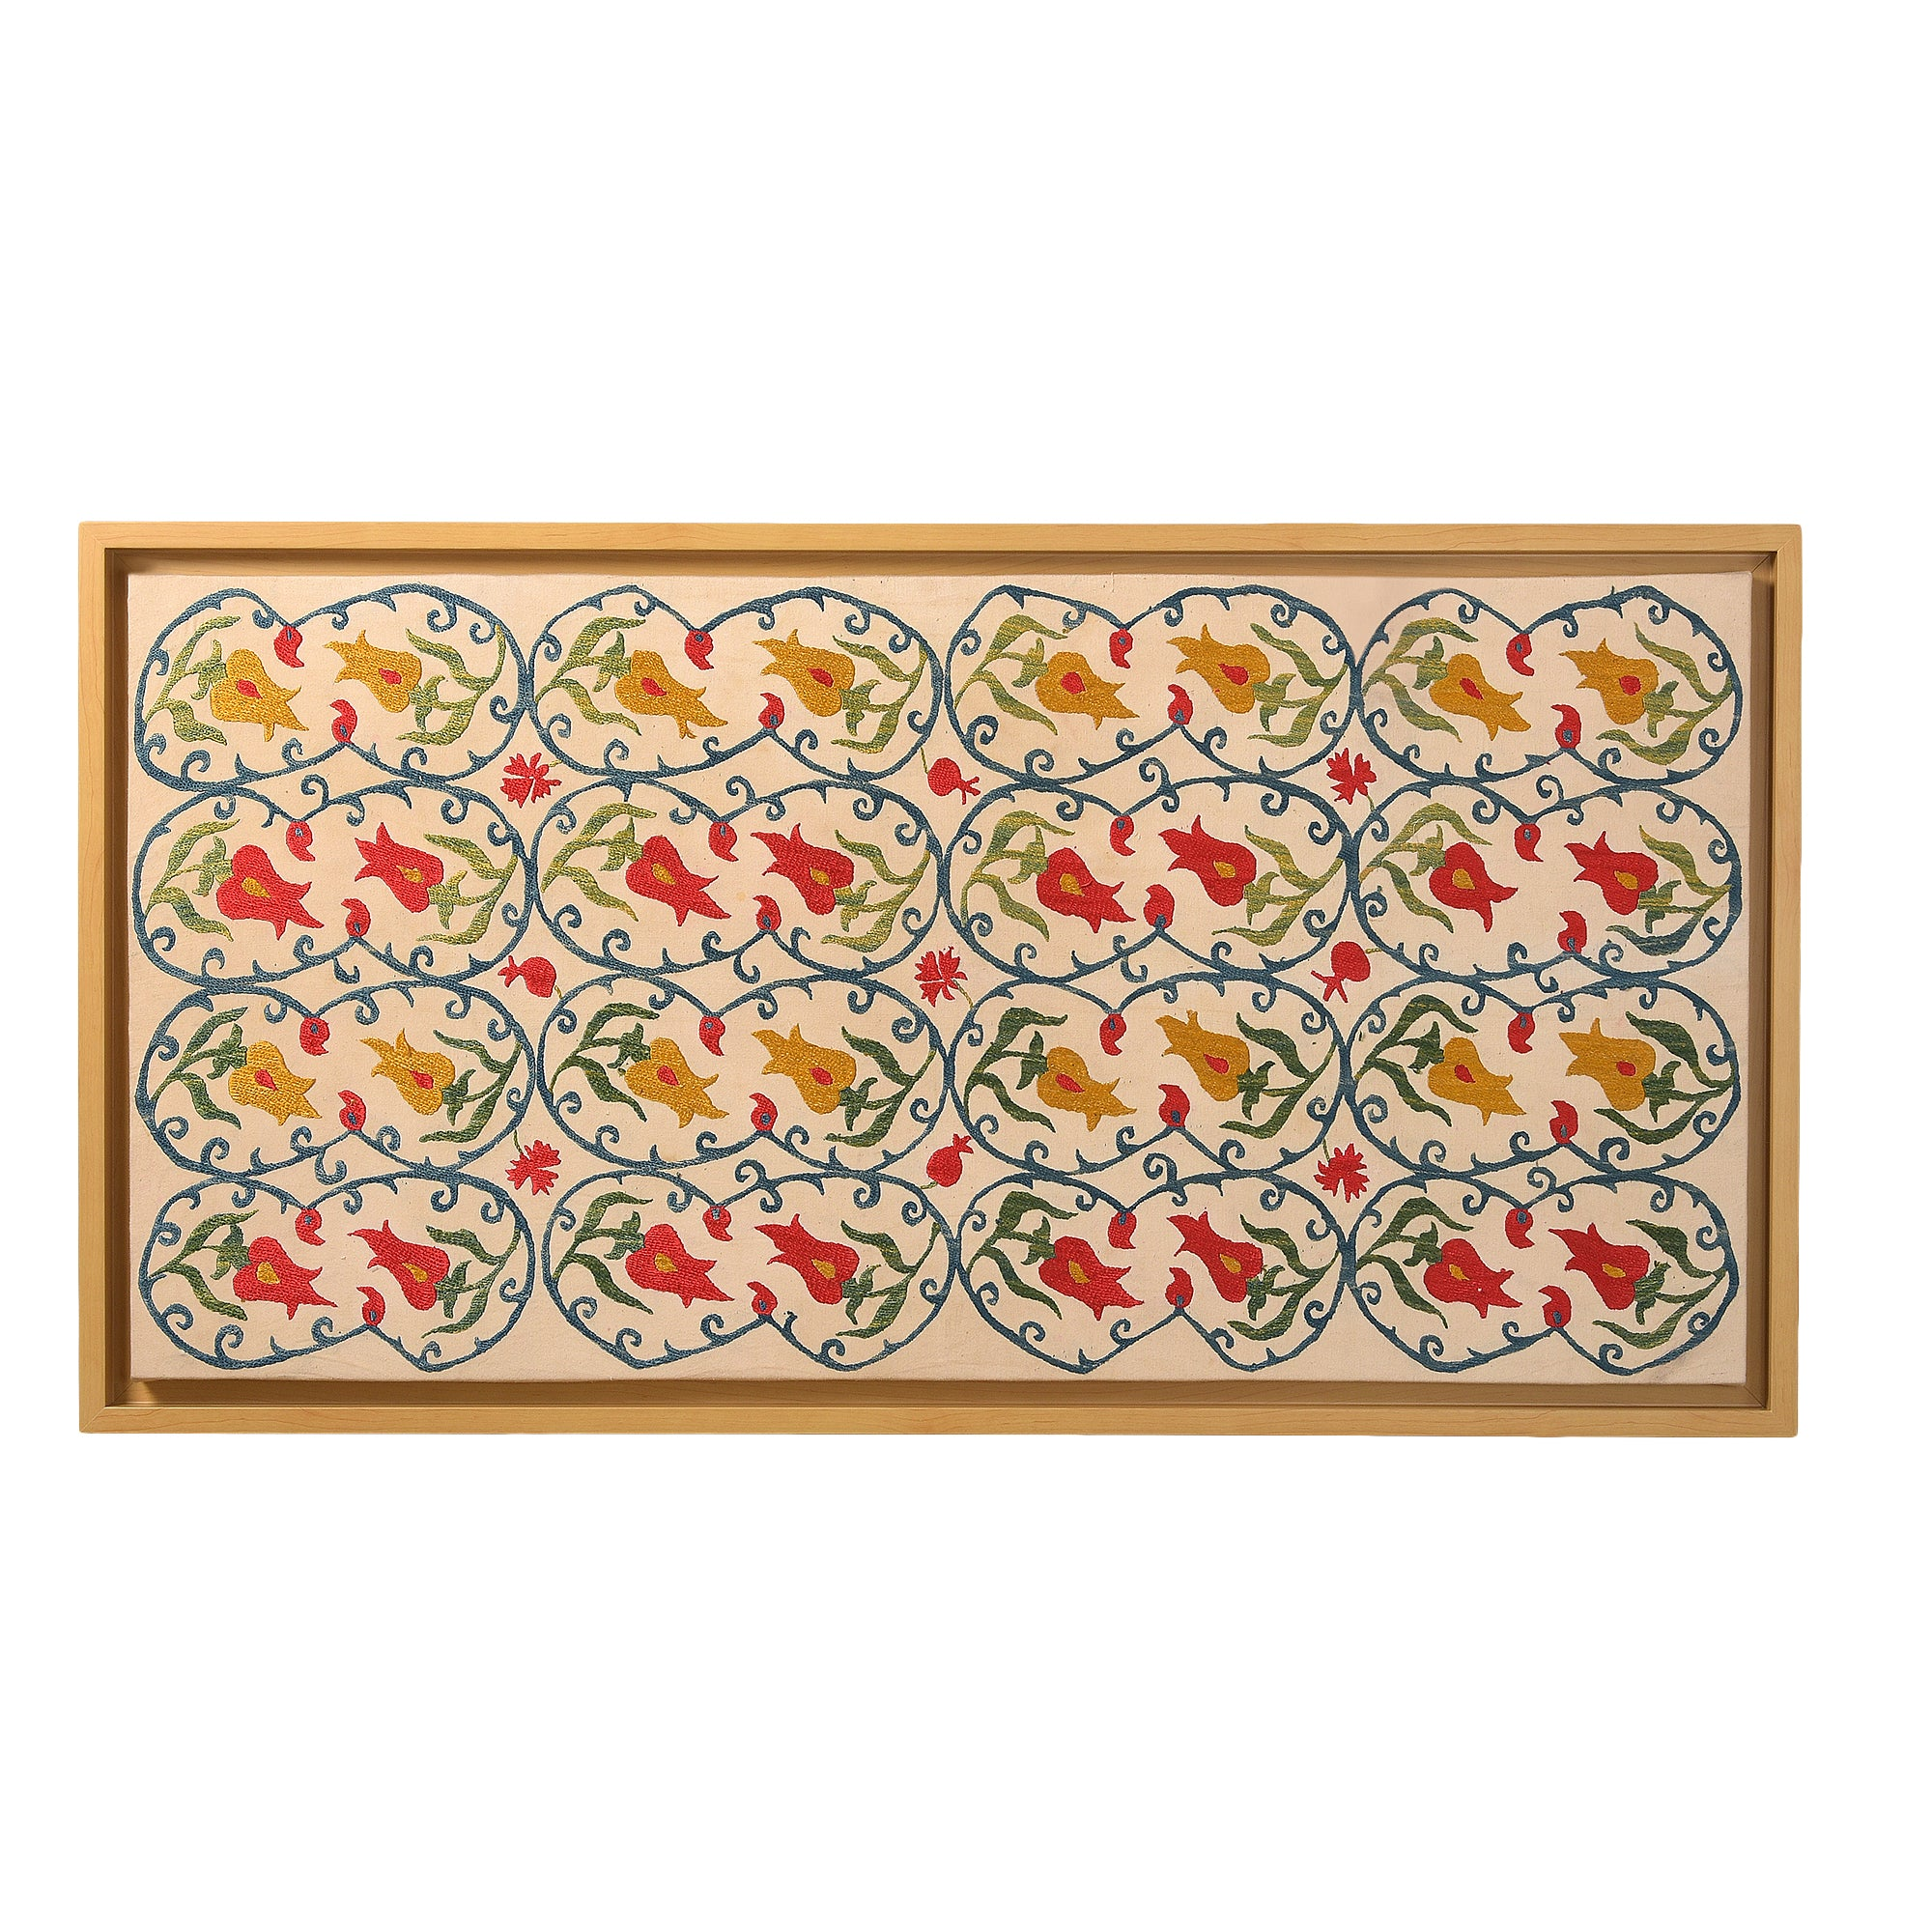 Turkish Motifs - Hand Embroidered Wall Art